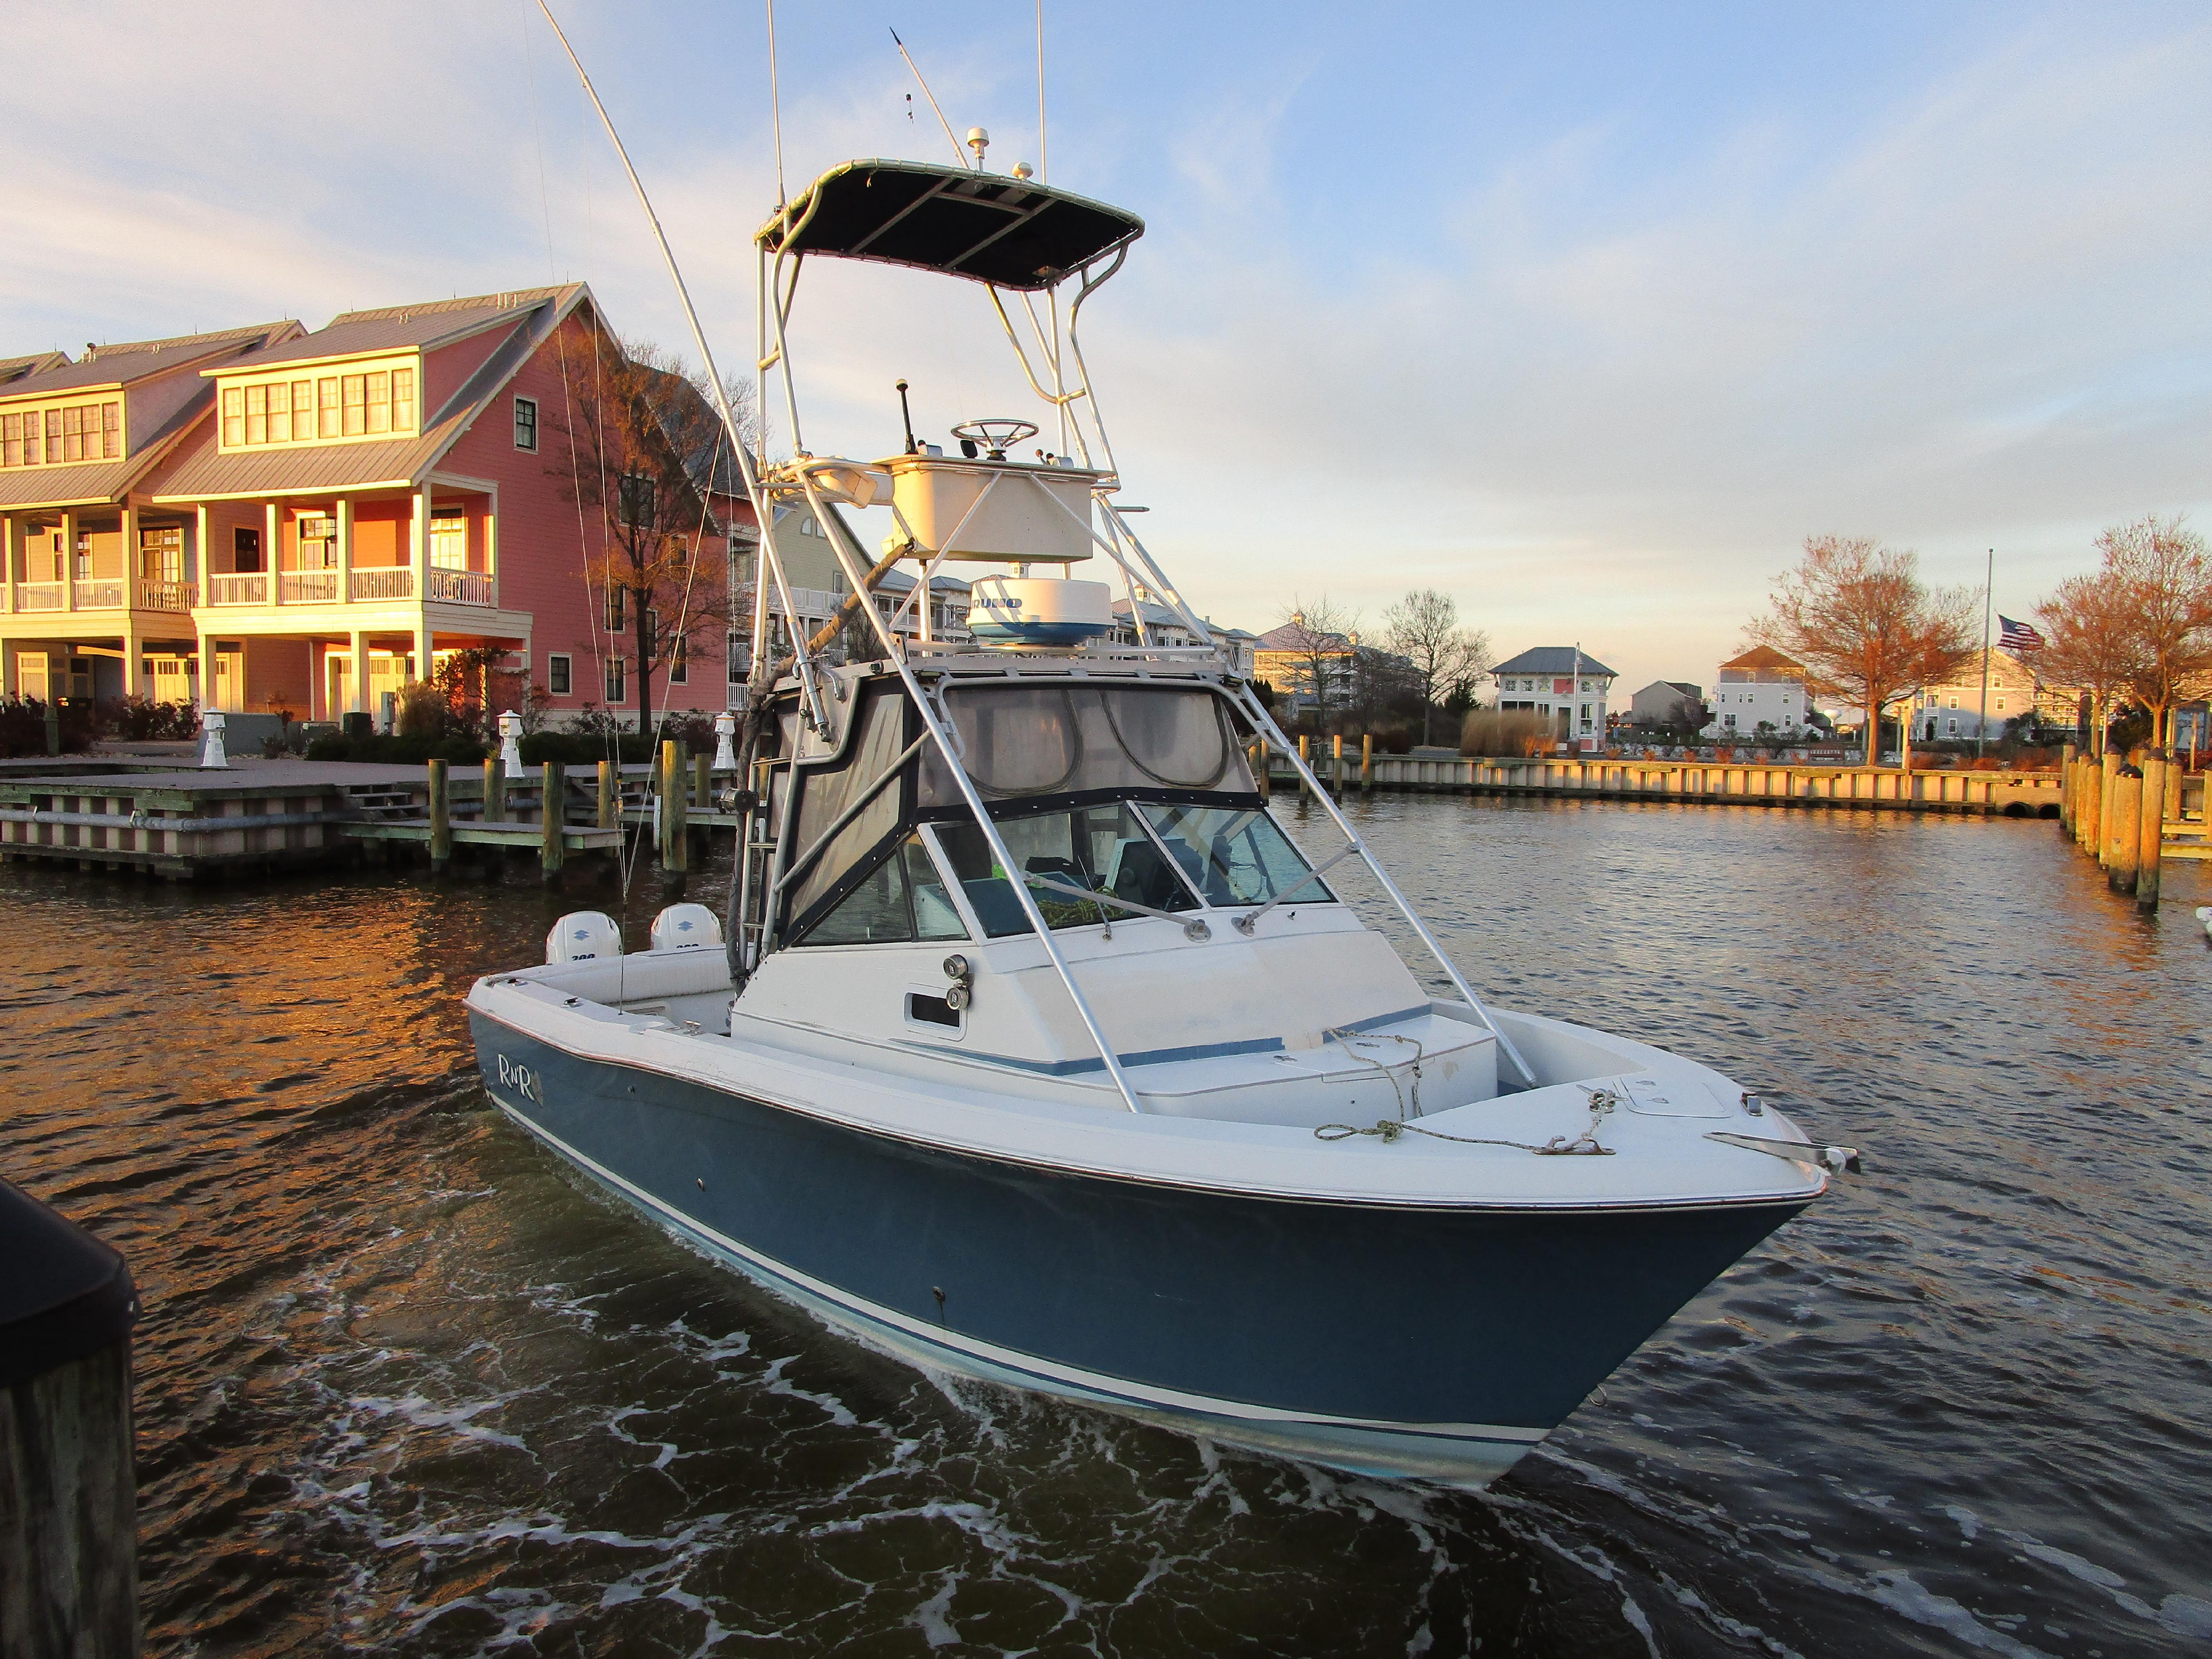 1986 Grady-White 25 Trophy Pro, Ocean City Maryland - boats com